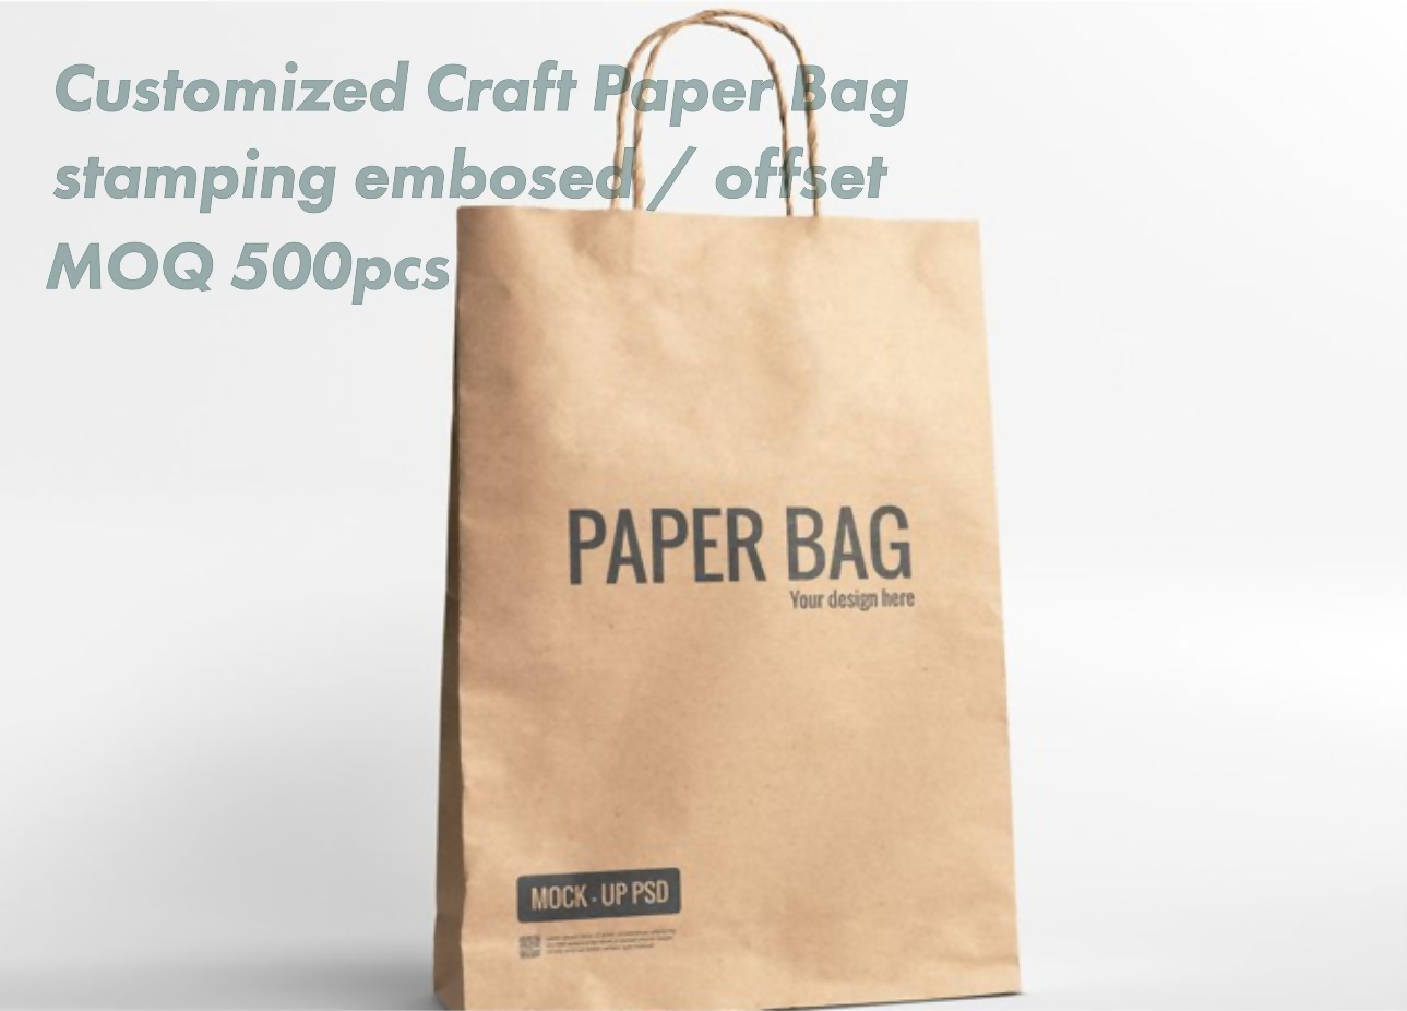 Customized craft paper bags